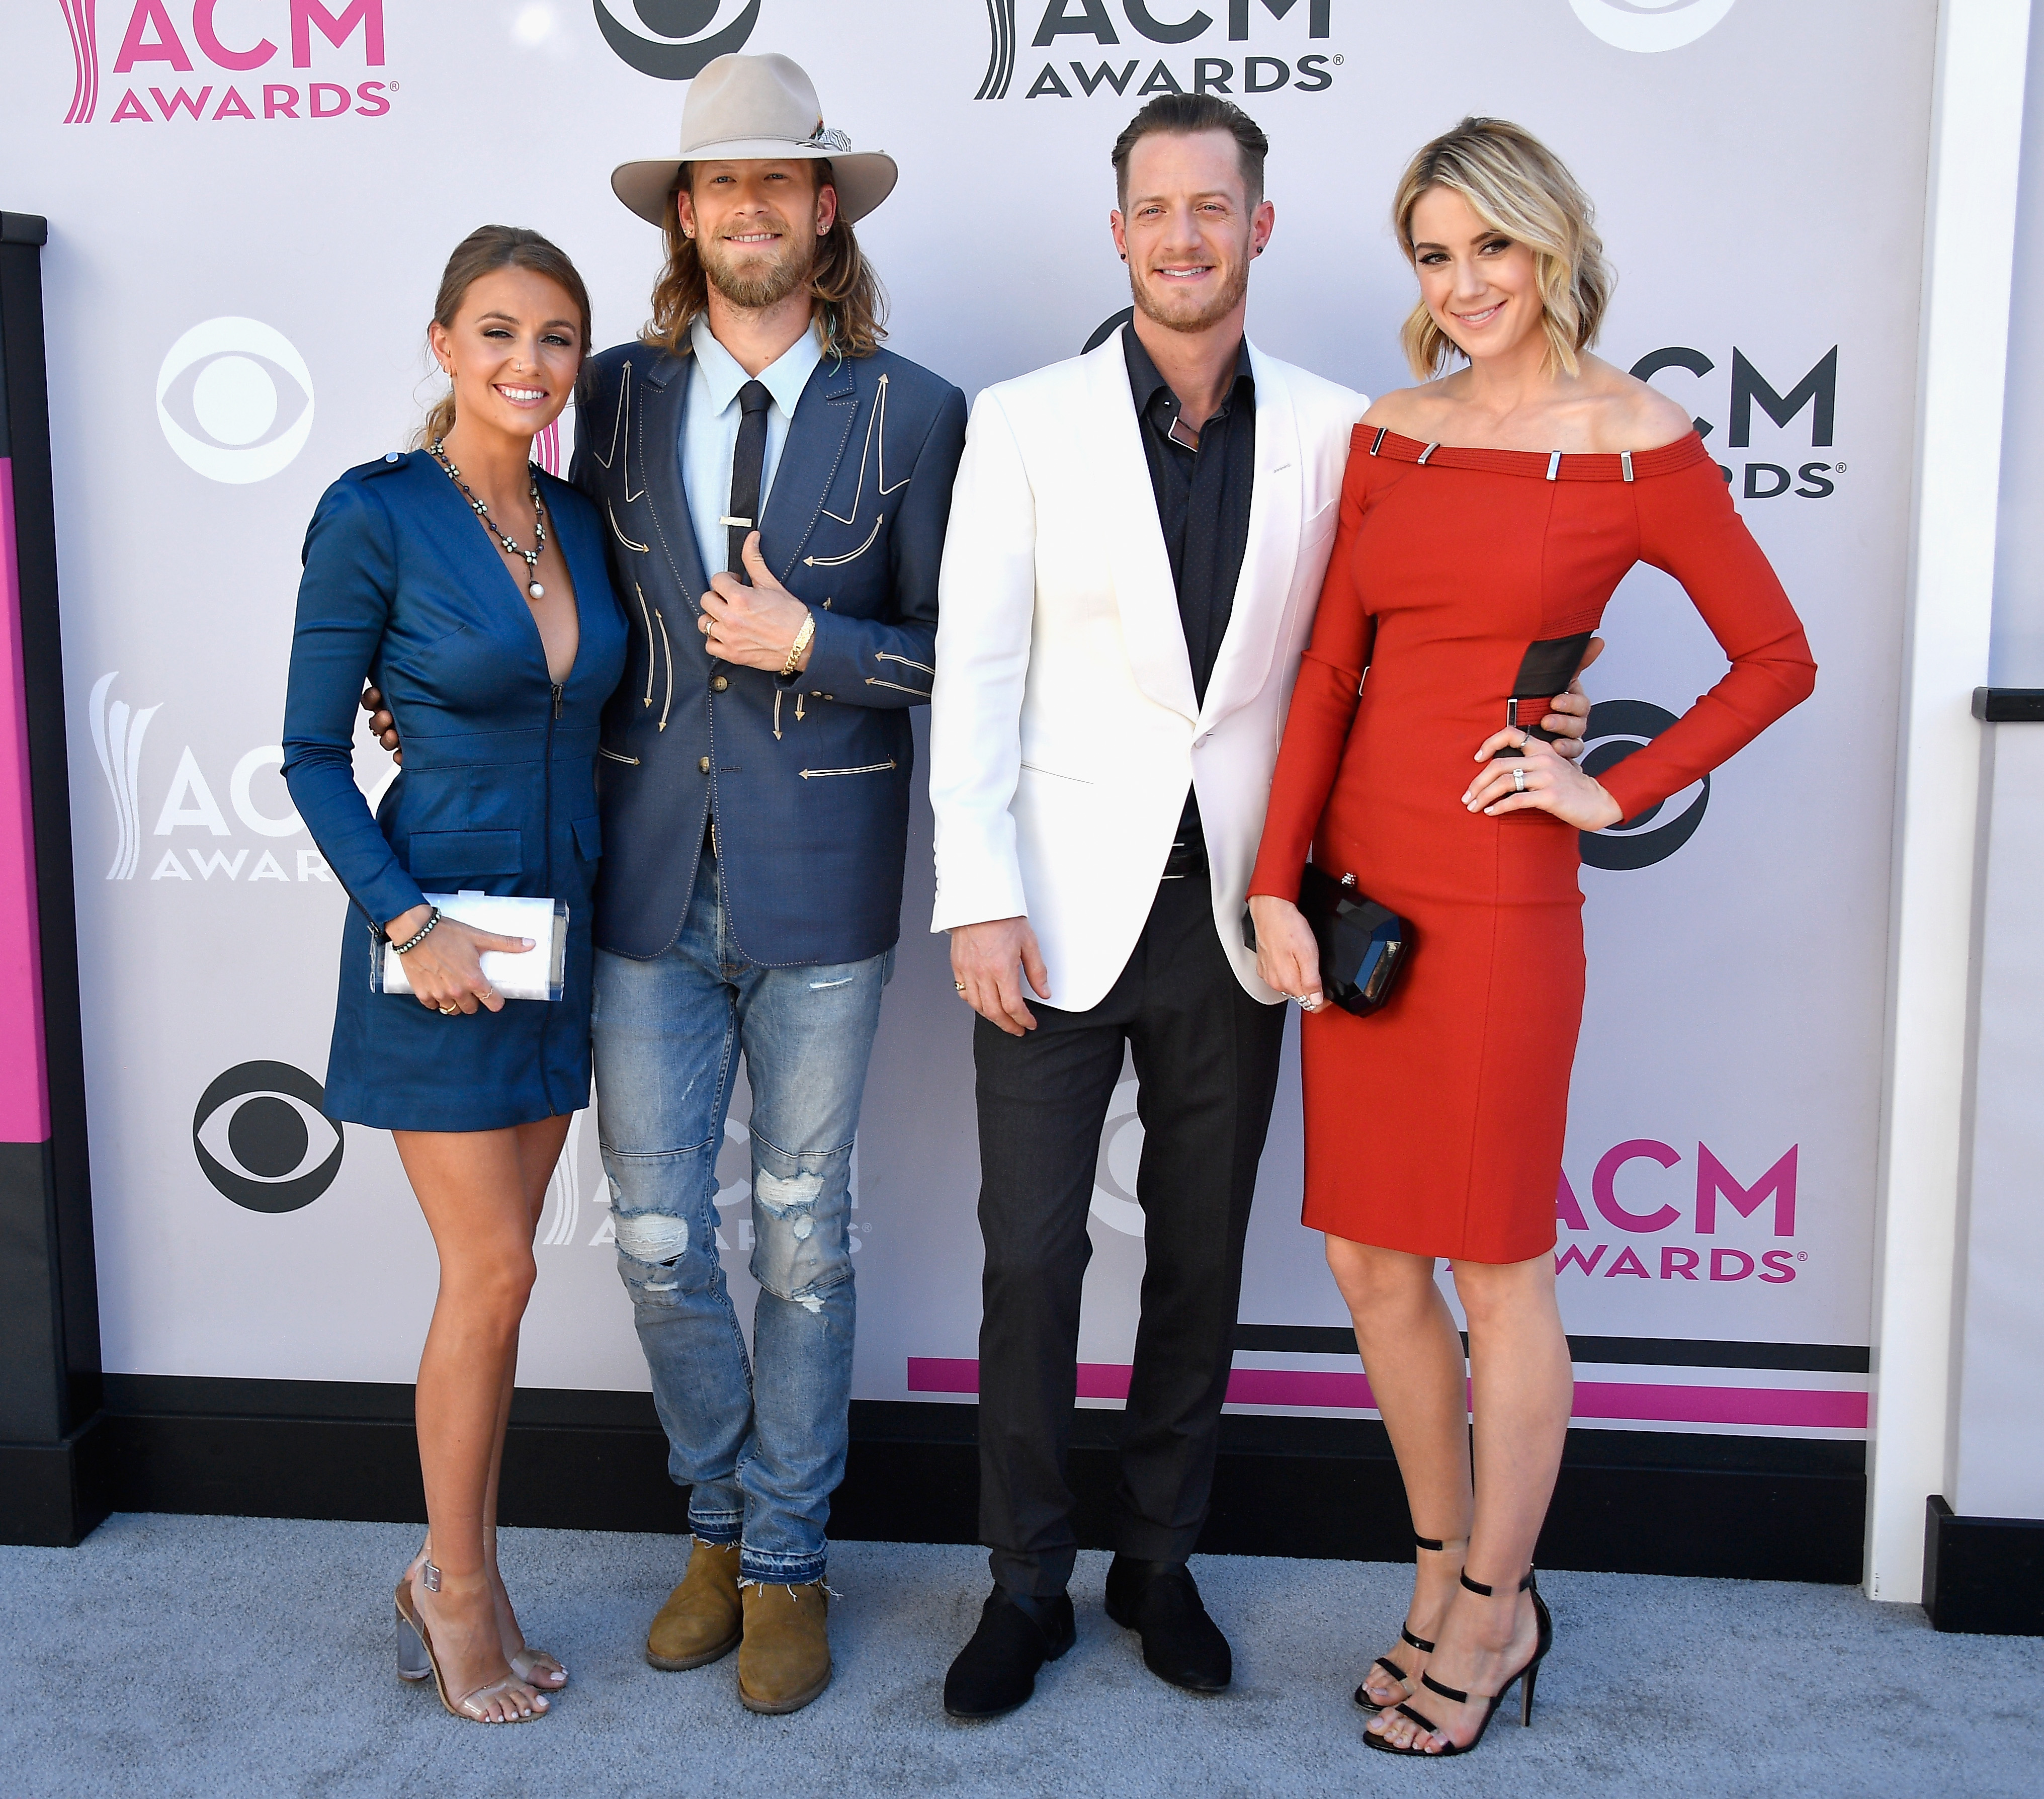 Brittney Marie Cole, recording artists Brian Kelley and Tyler Hubbard of music group Florida Georgia Line, and Hayley Stommel; Photo by Frazer Harrison/Getty Images